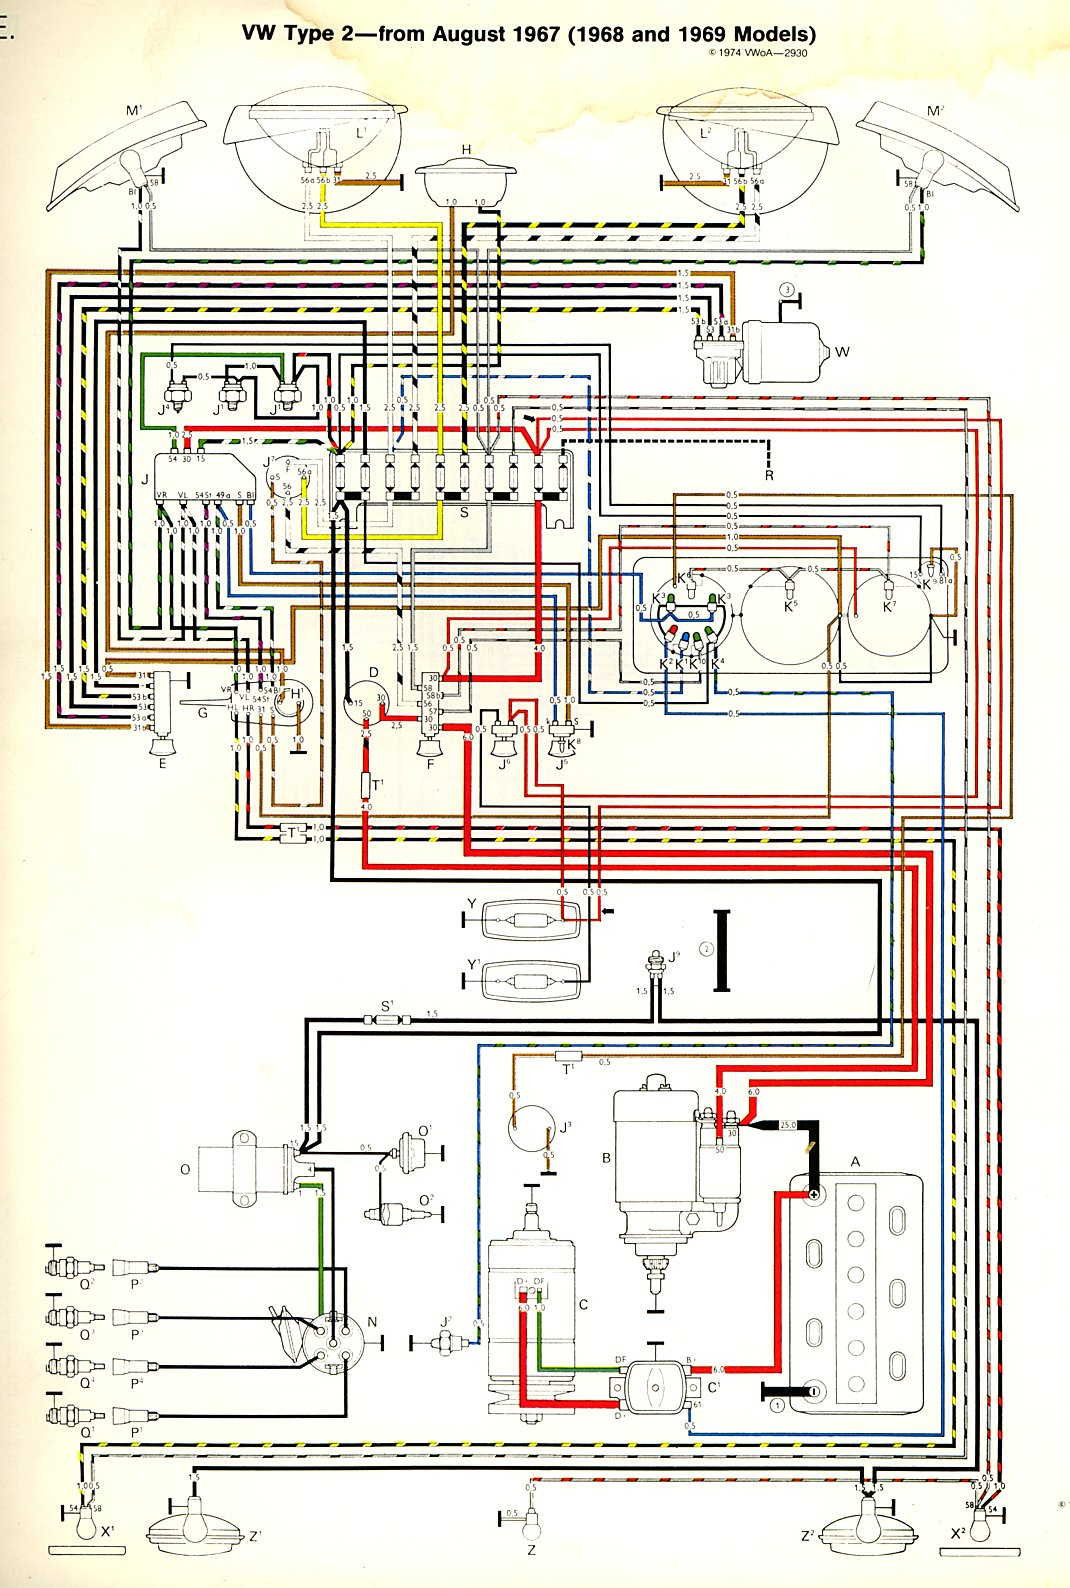 baybus_6869a 1968 69 bus wiring diagram thegoldenbug com Volkswagen Type 2 Wiring Harness at crackthecode.co